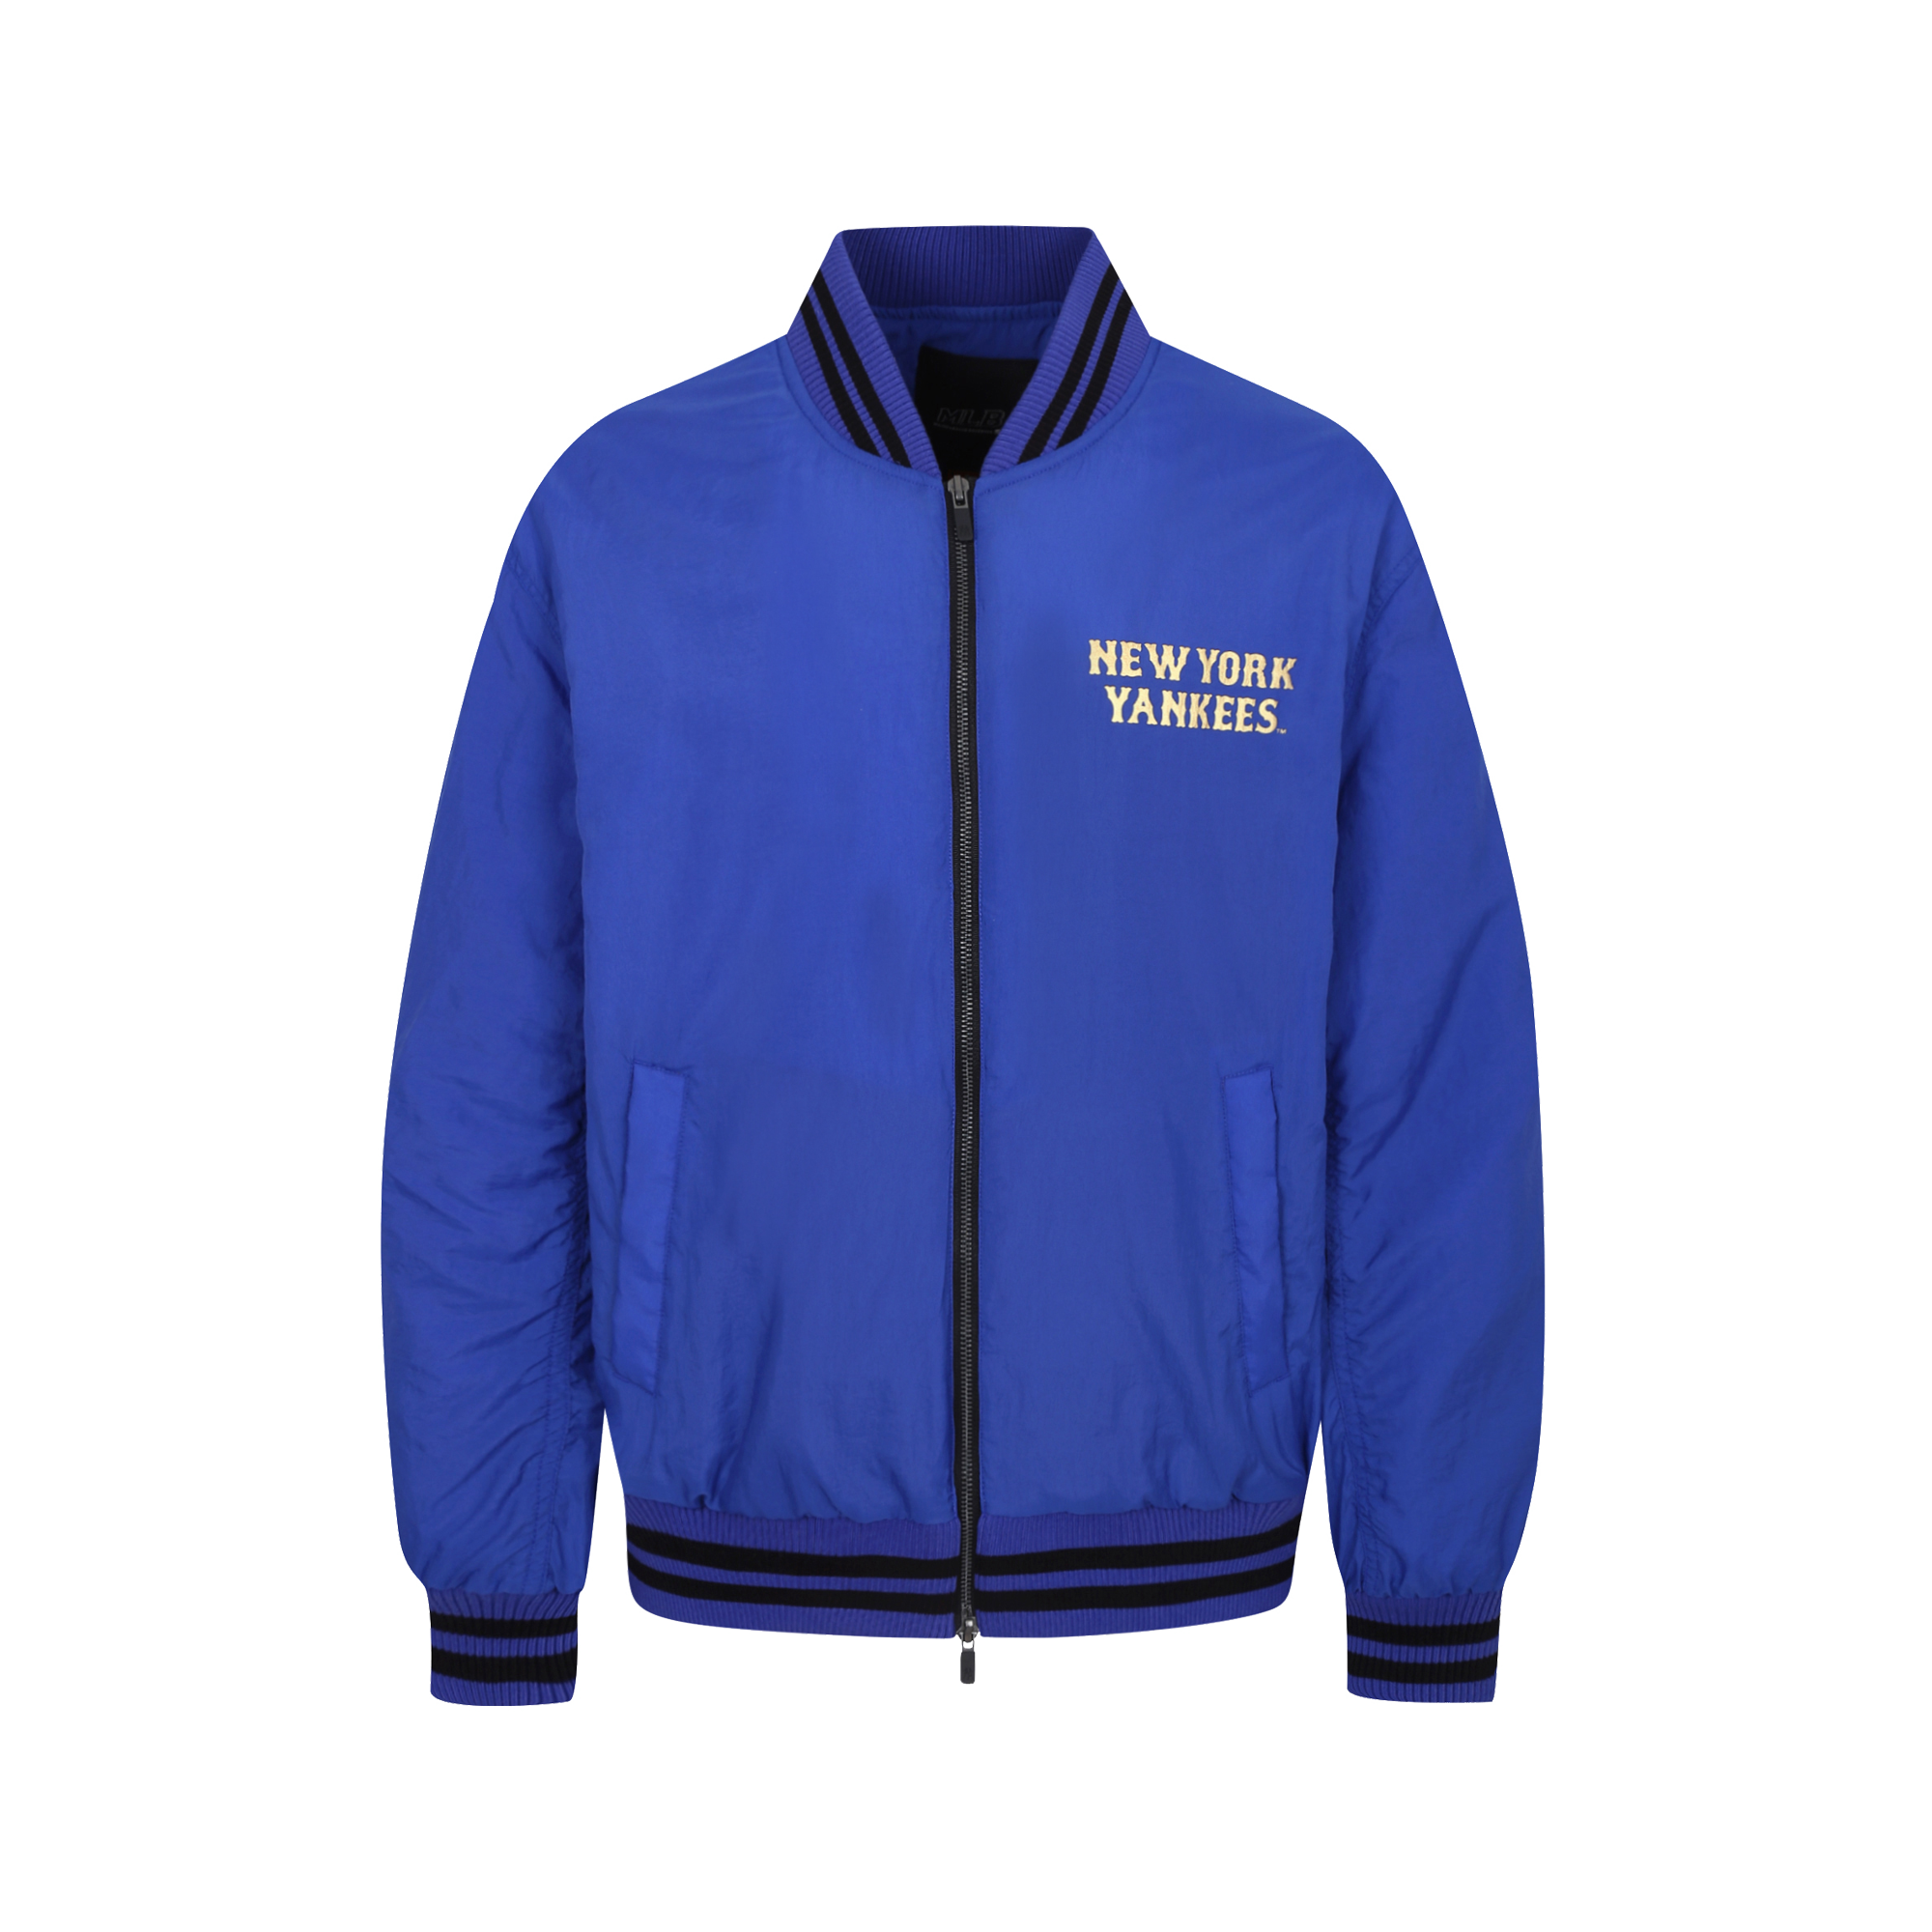 NEW YORK YANKEES FRAME PADDING VARSITY JACKET